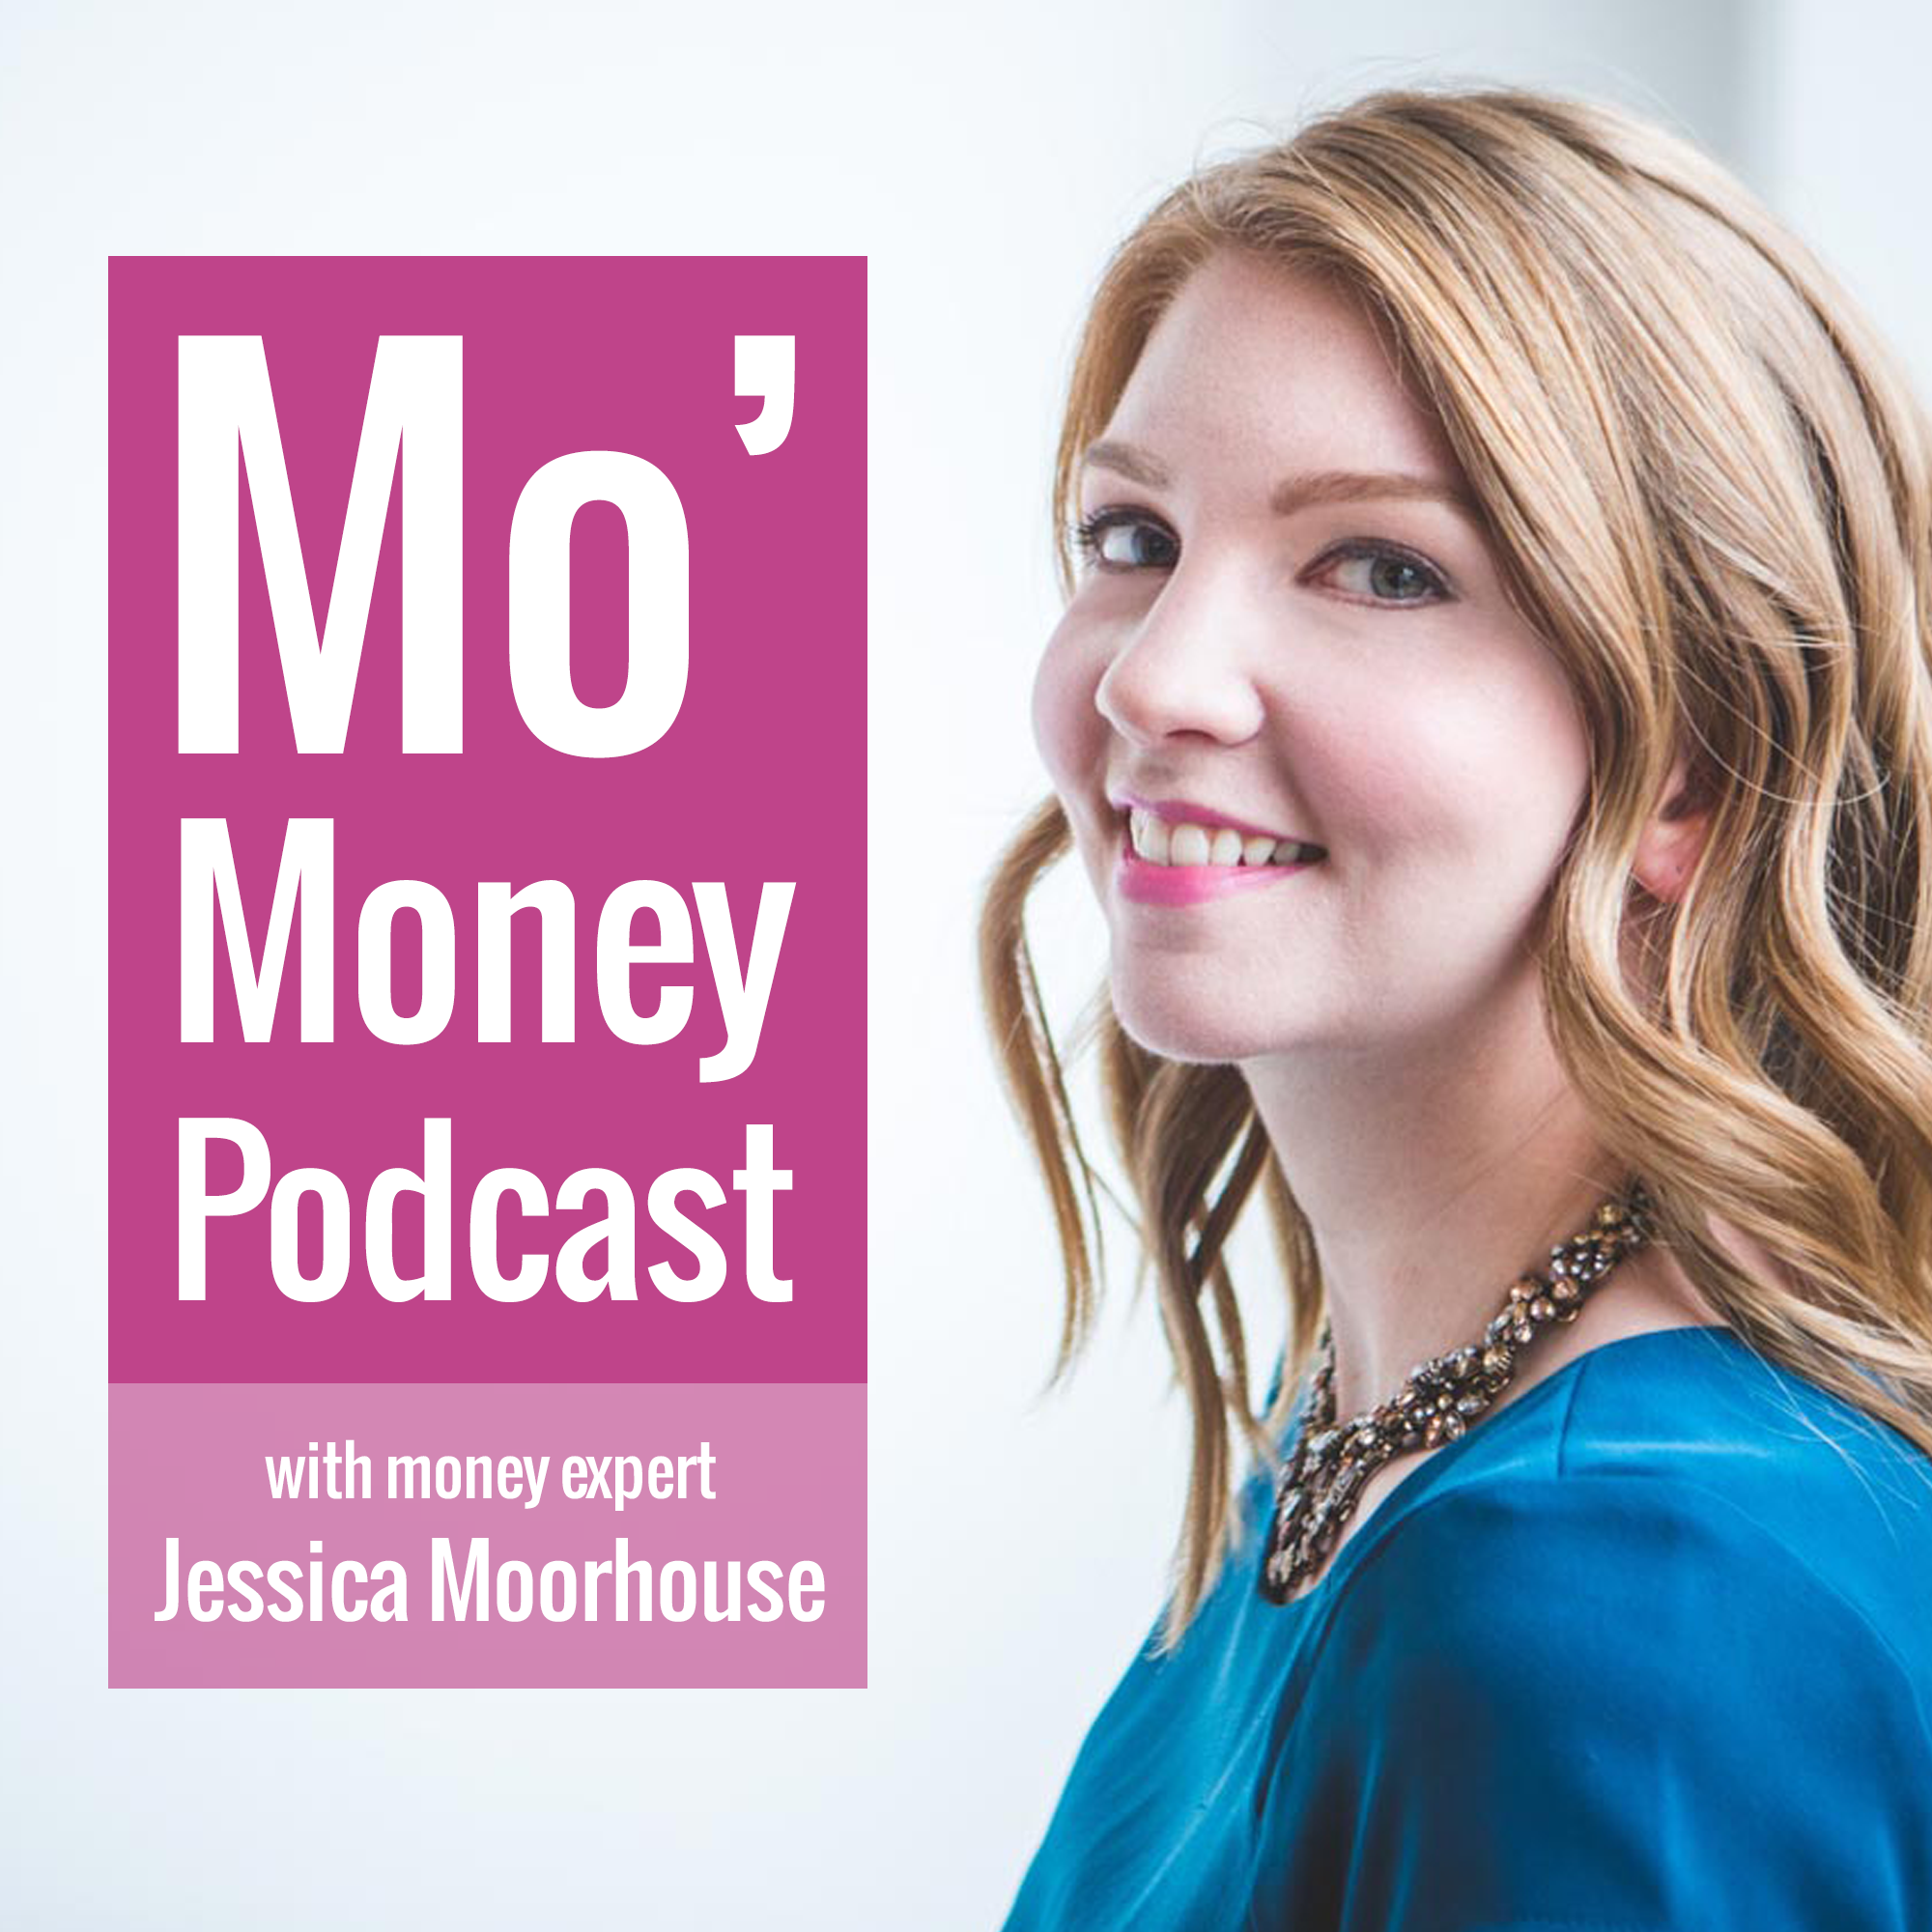 7. Mo' Money - with Jessica Moorhouse